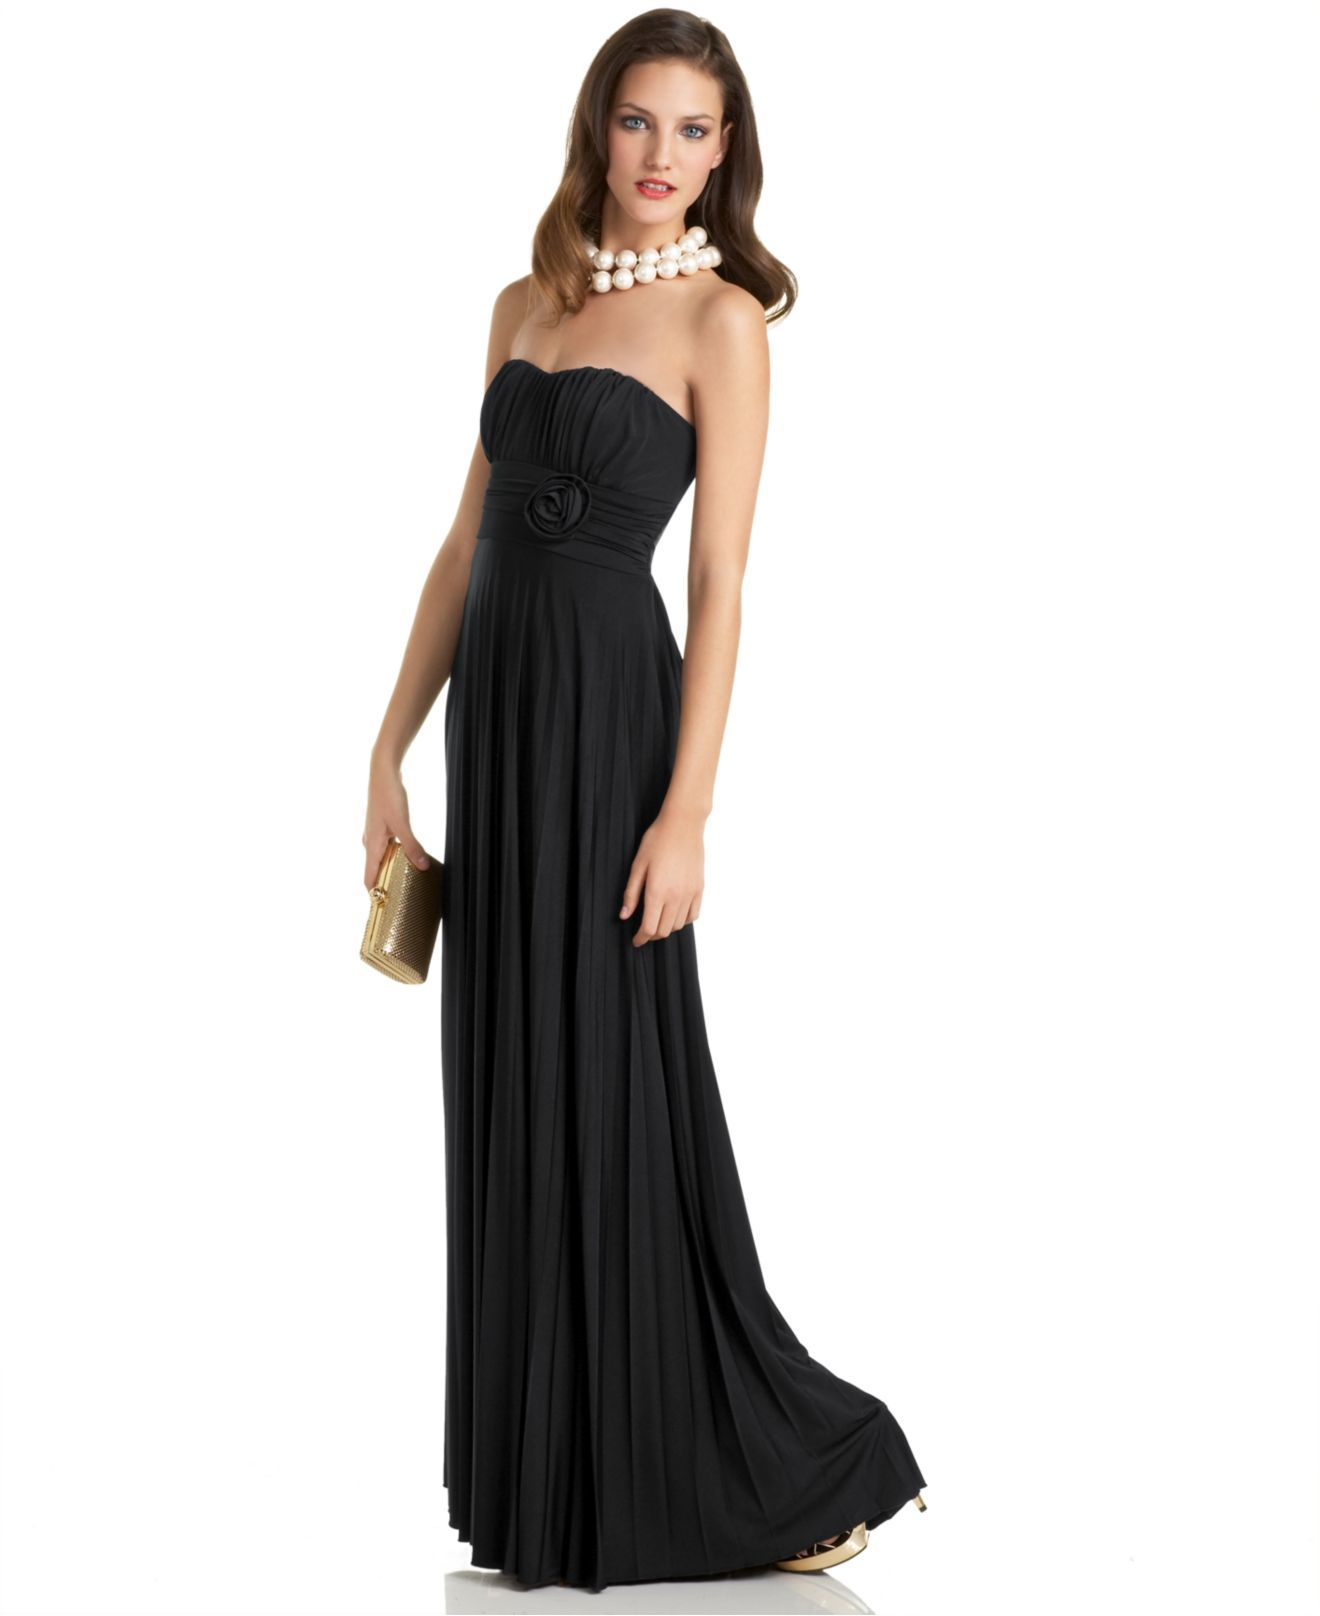 Speechless dress strapless gown with rose waist detail womens speechless dress strapless gown with rose waist detail womens dresses macys ombrellifo Images